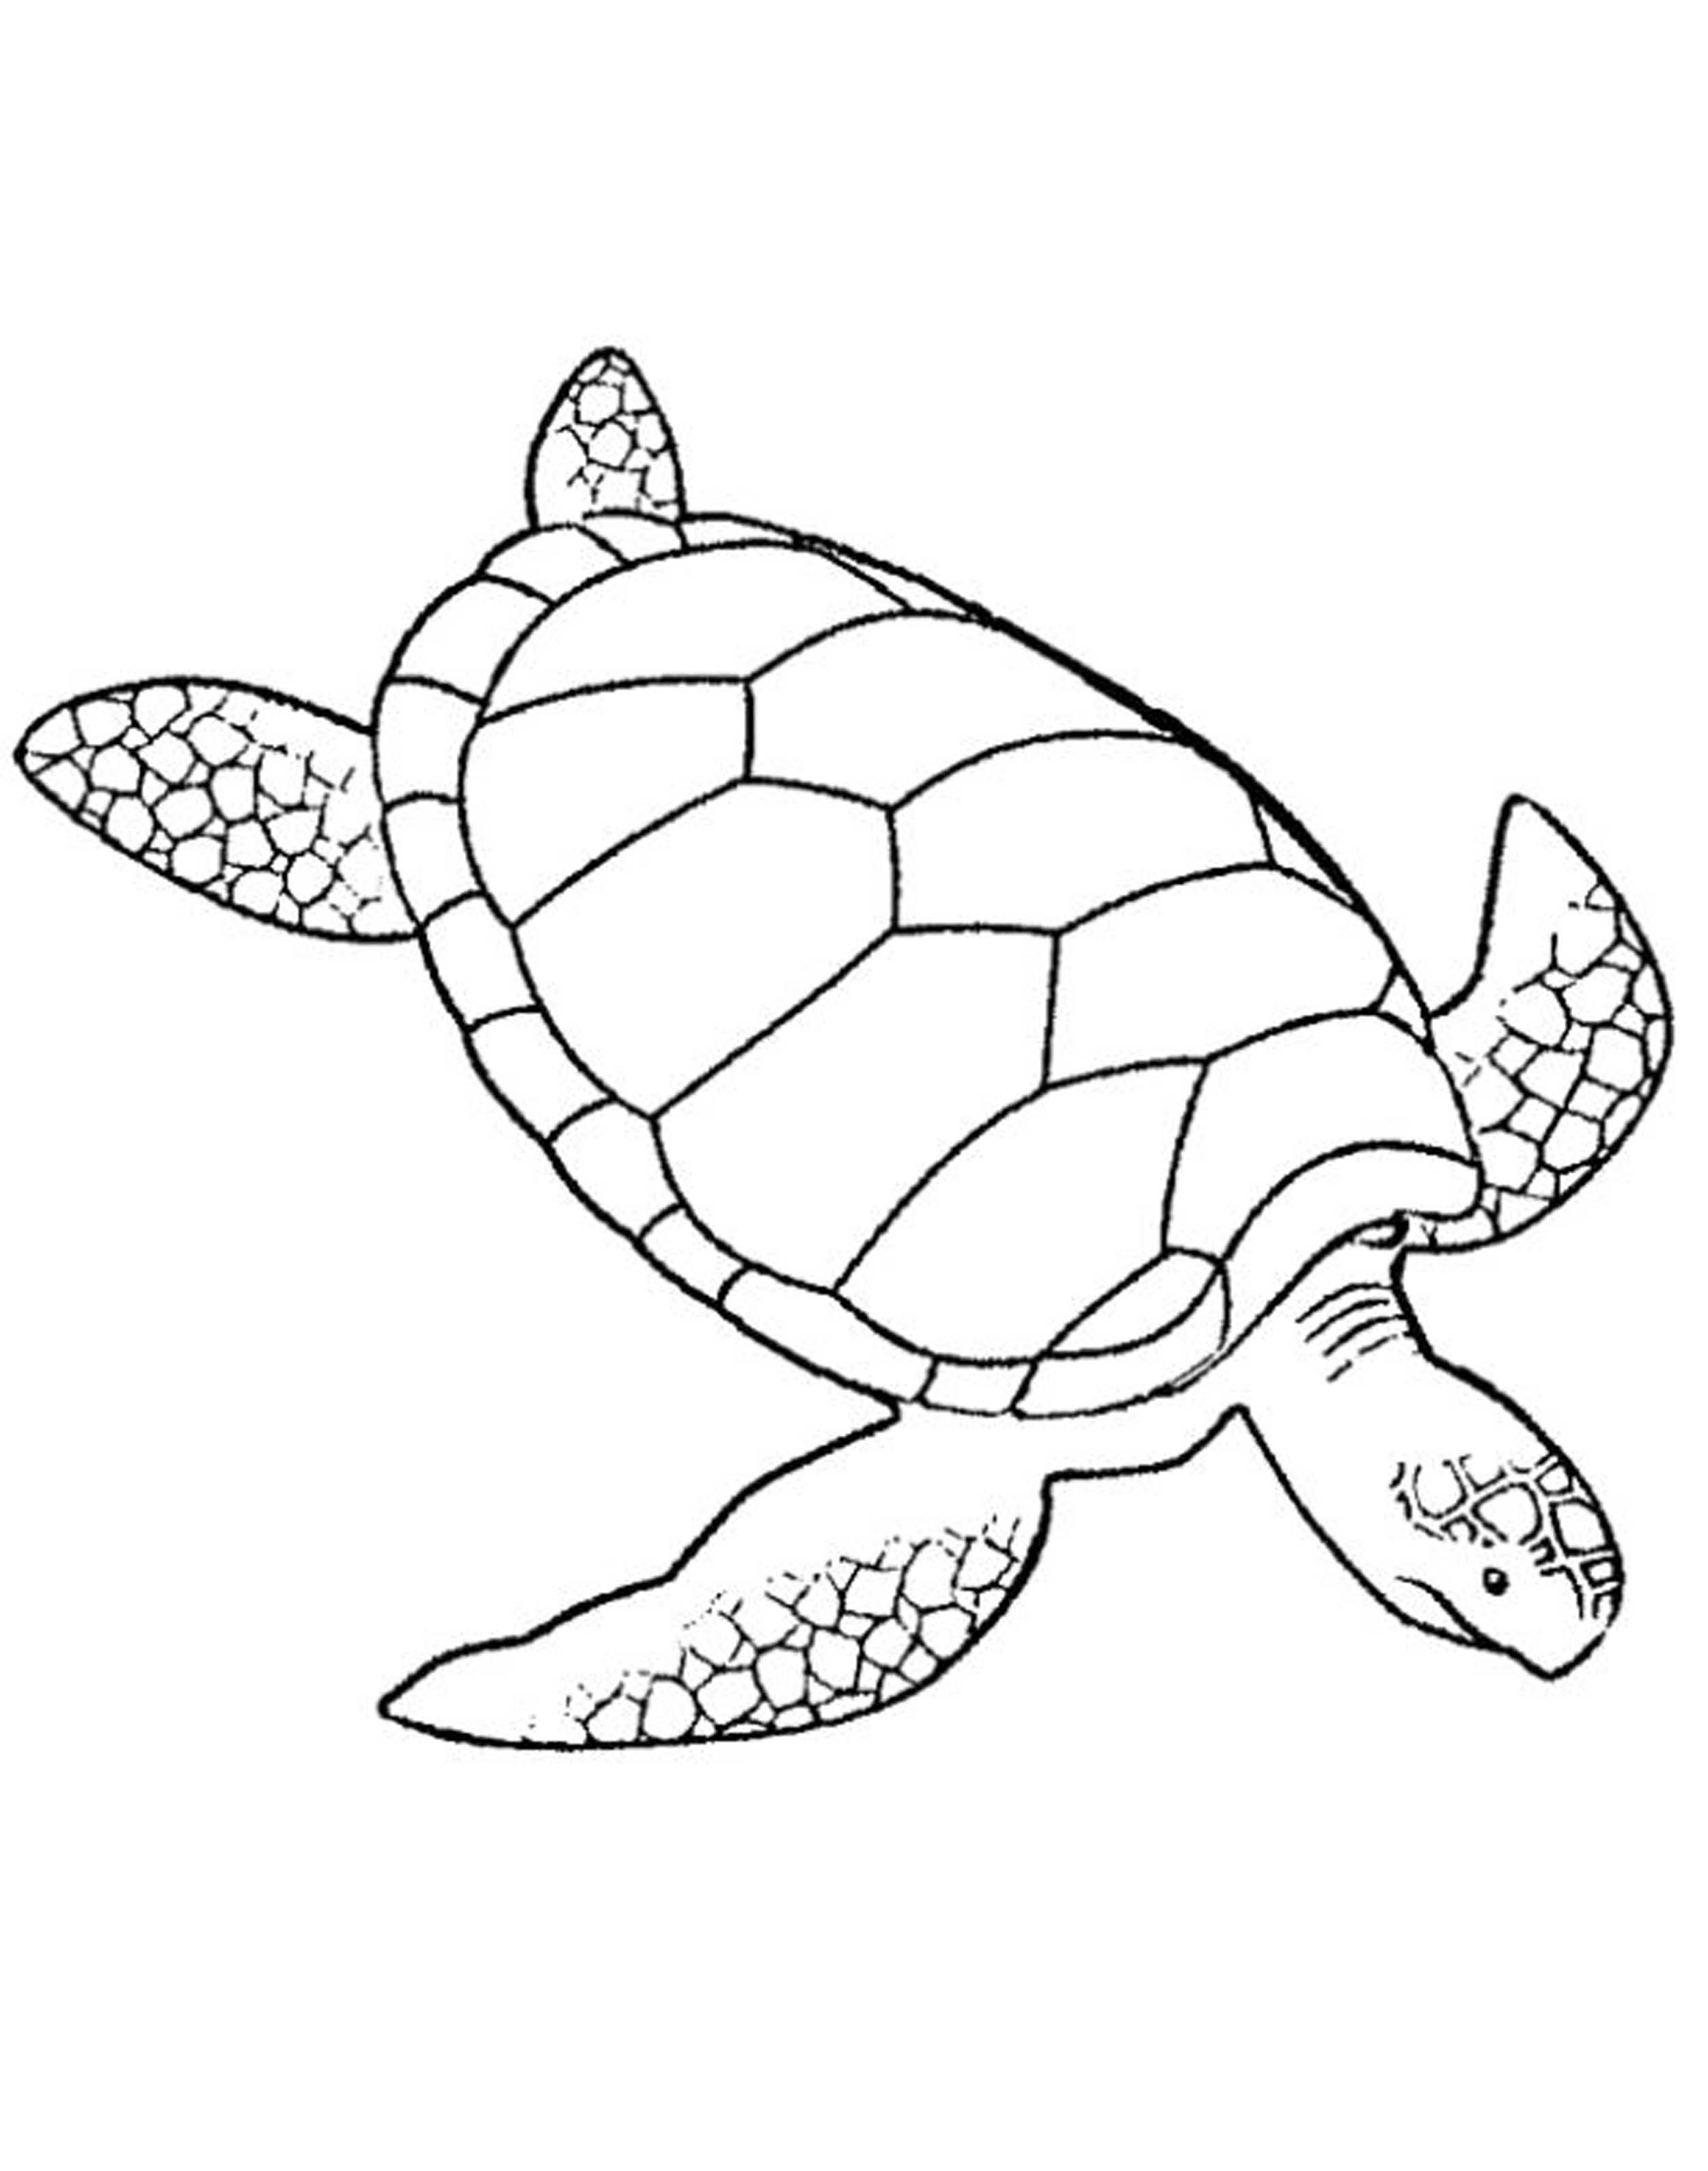 turtle coloring pages for adults free turtle coloring pages for adults printable to coloring pages adults for turtle